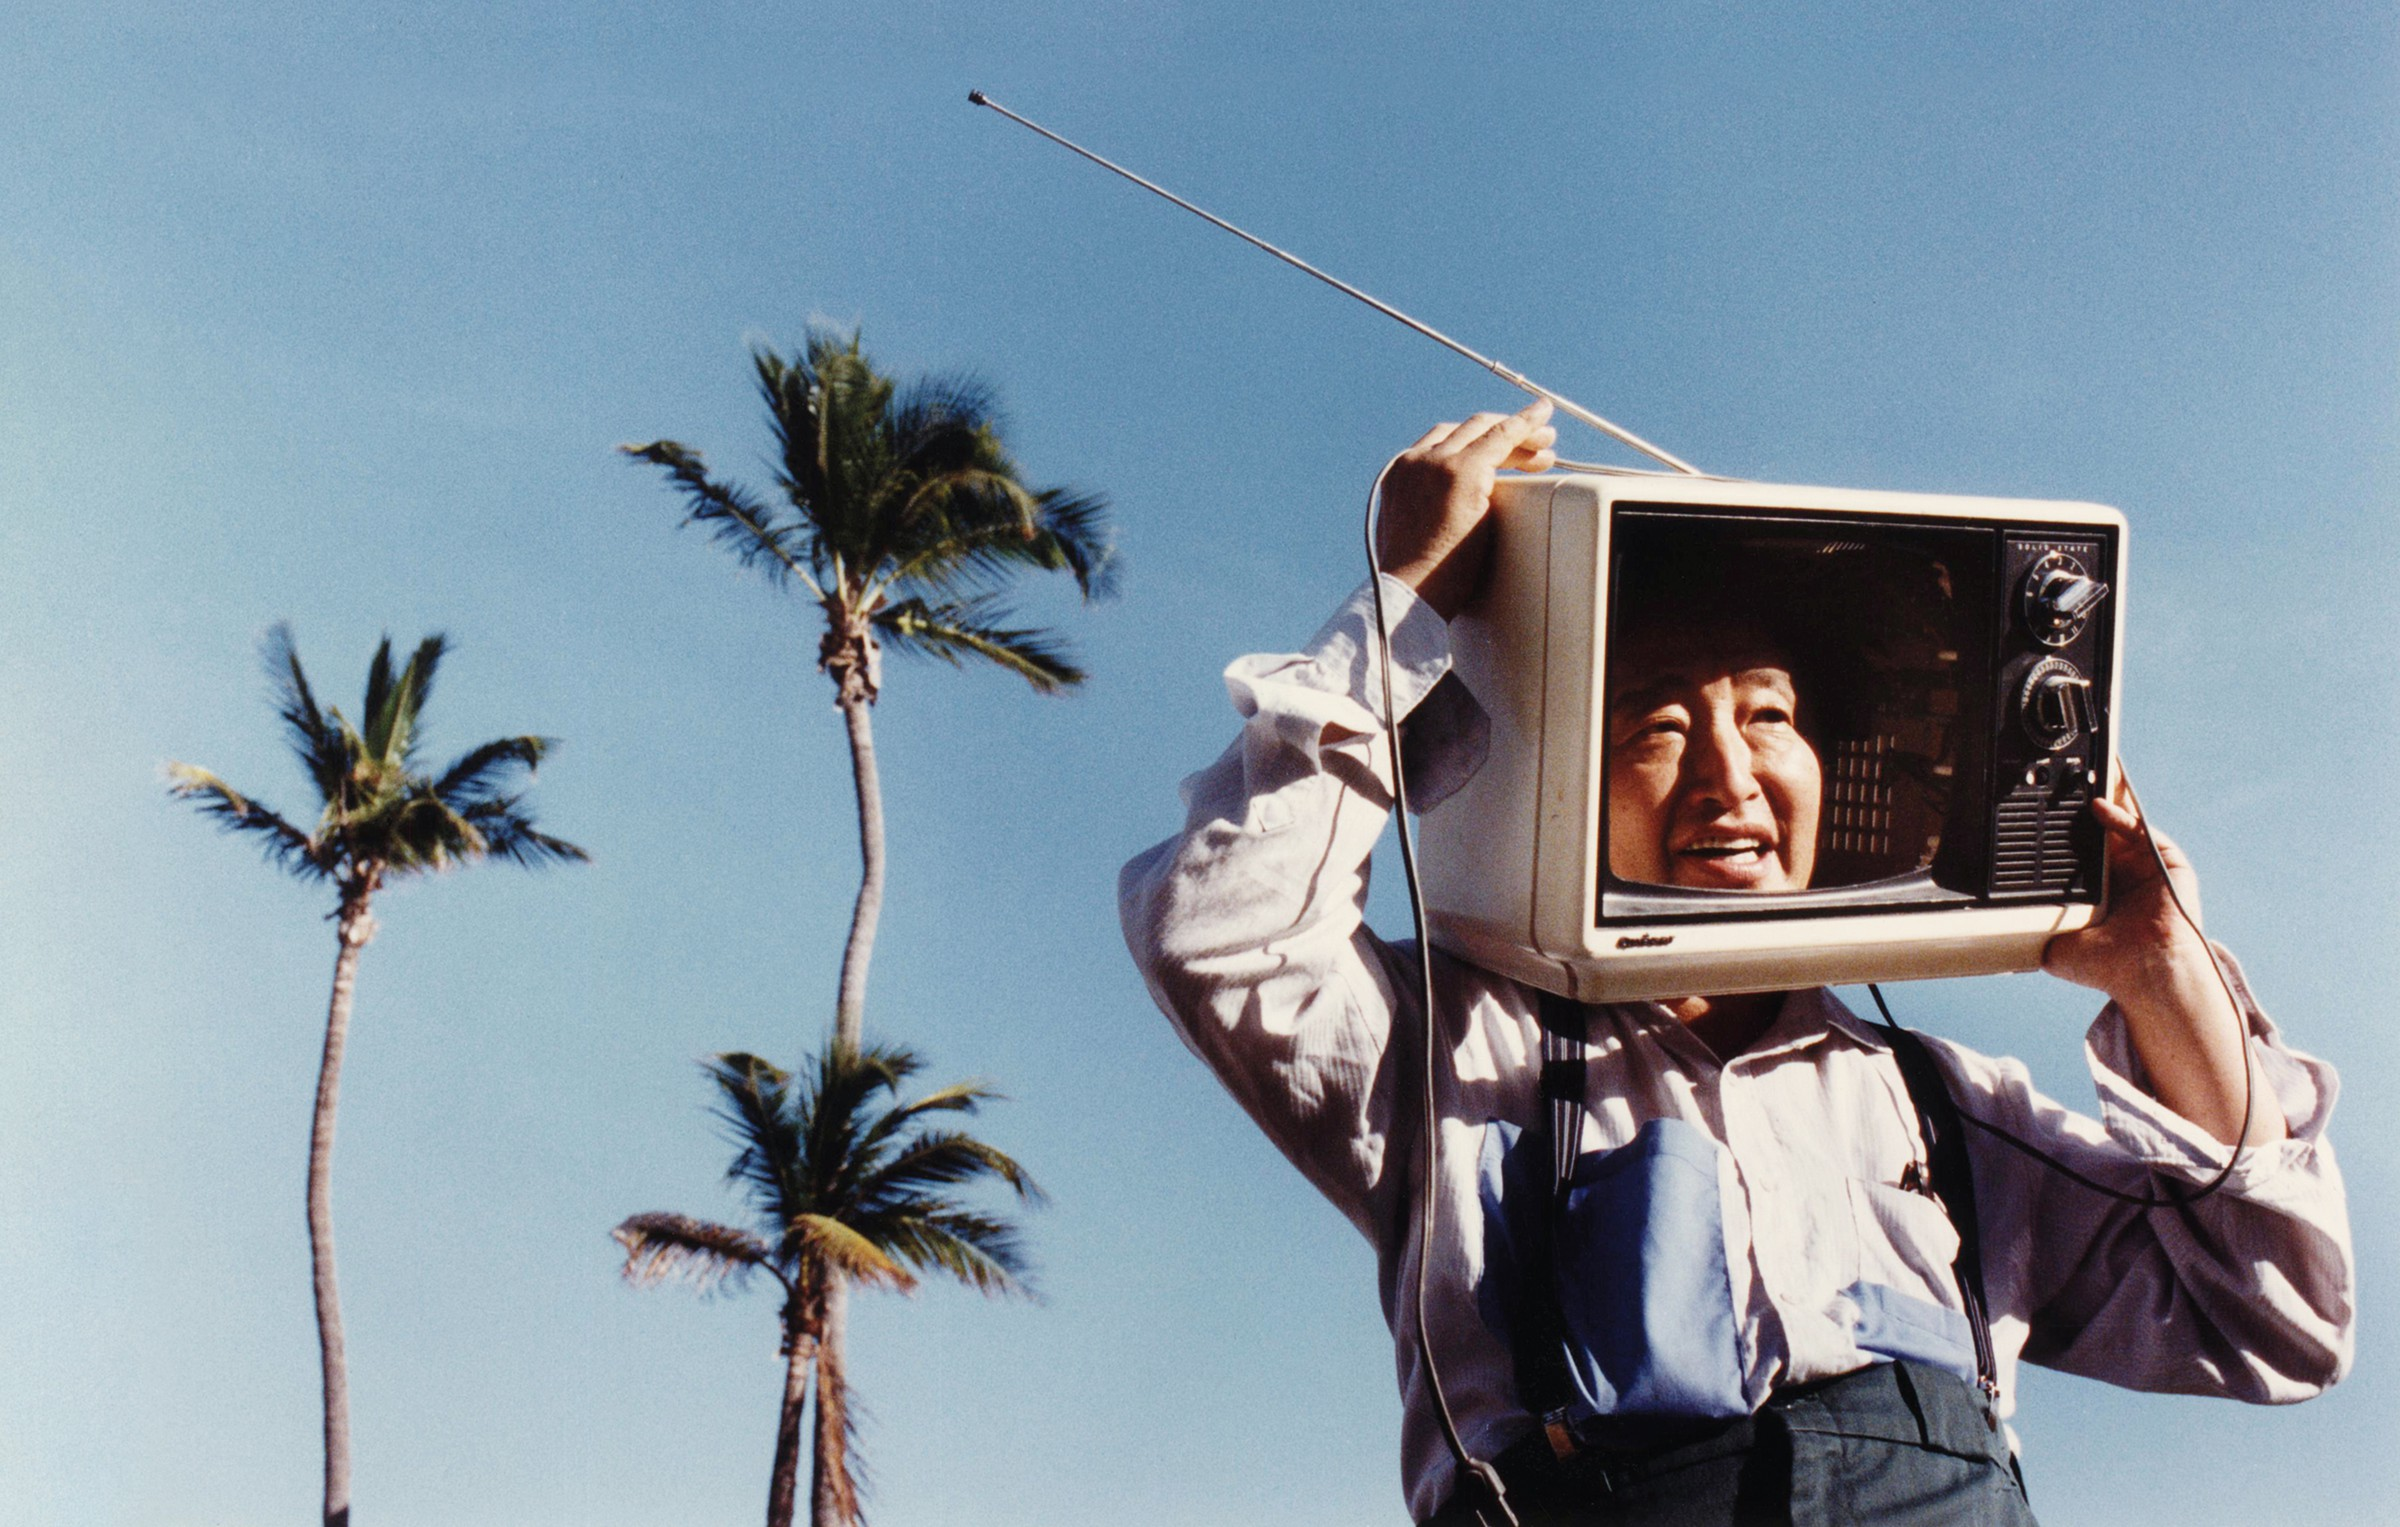 The artist Nam June Paik is shown with his head inside of an evacuated CRT television; behind Paik, three palm trees stand on a blue sky.